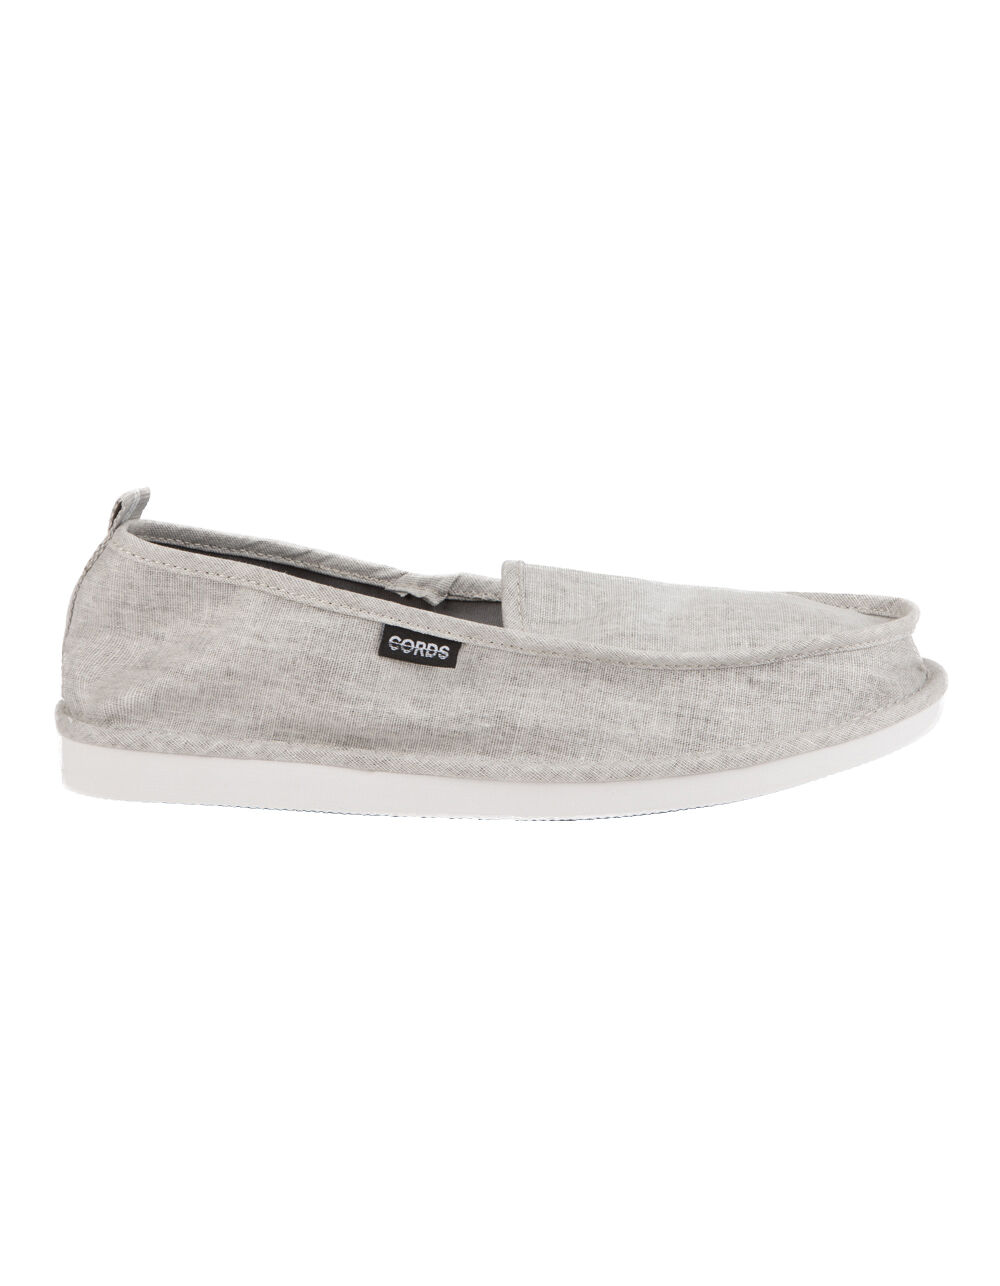 Image of CORDS DRAPER DECONSTRUCTED GREY SLIPPERS